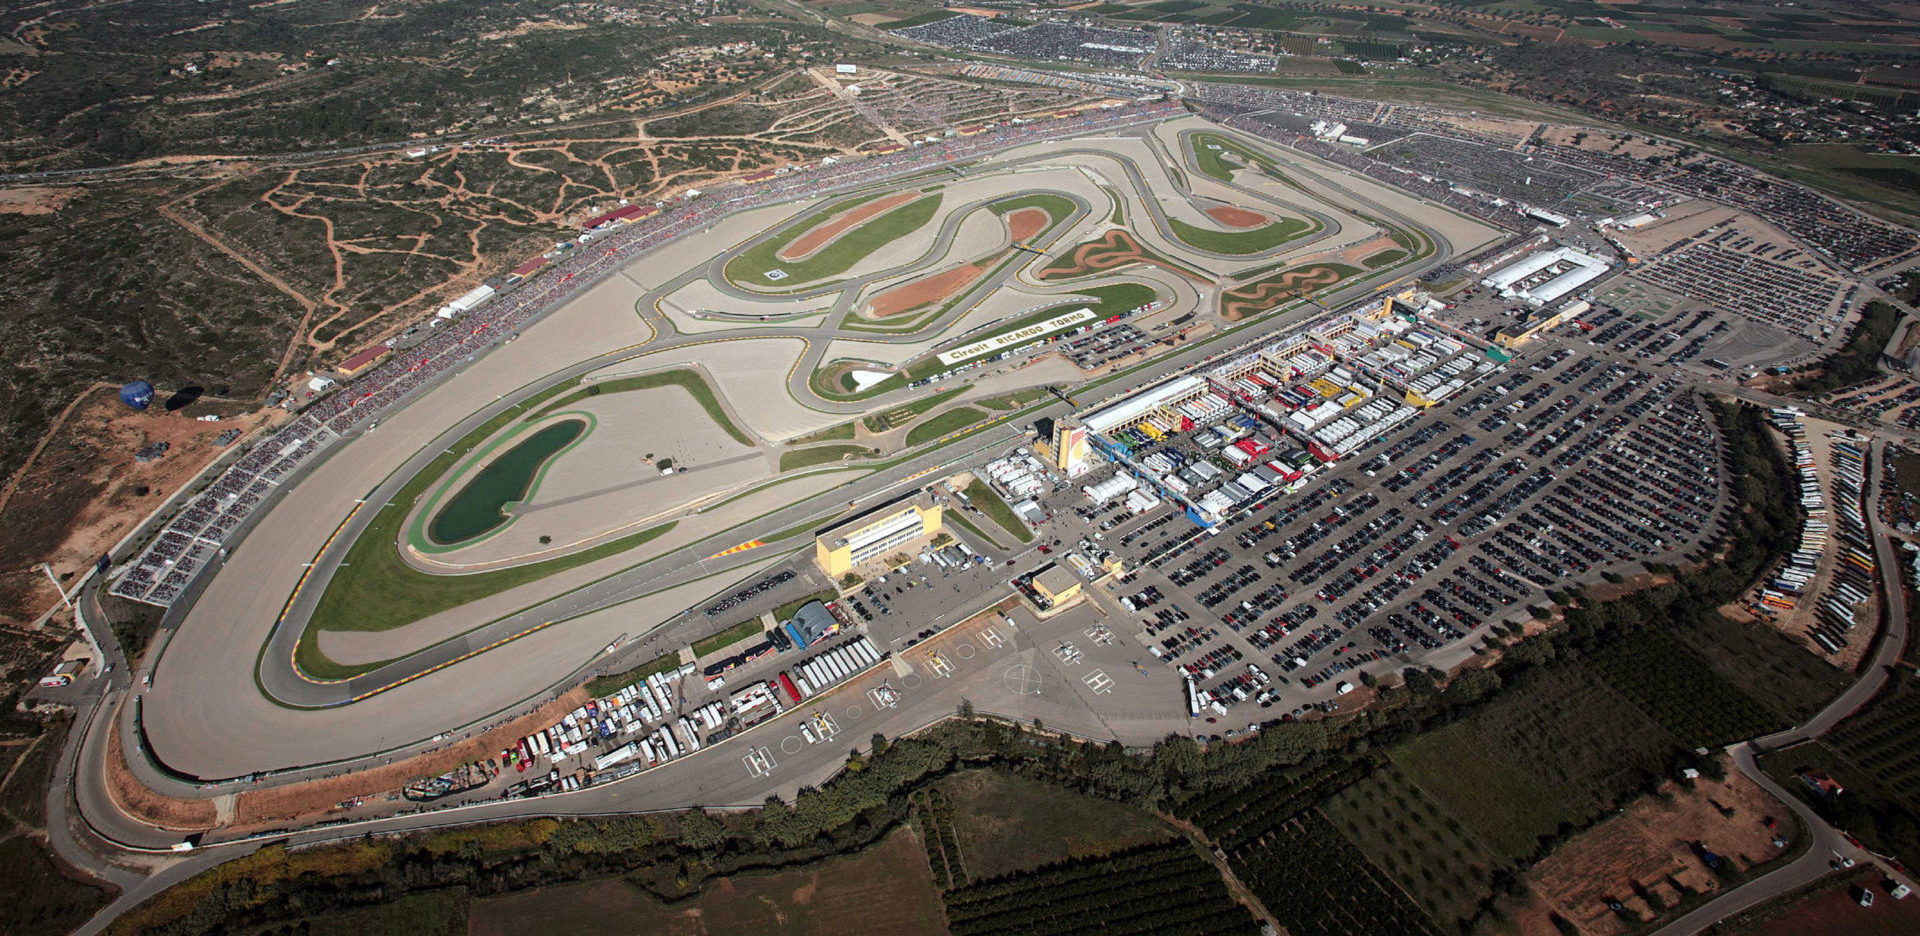 Circuit de la Comunitat Valenciana Ricardo Tormo. Photo courtesy of Michelin.